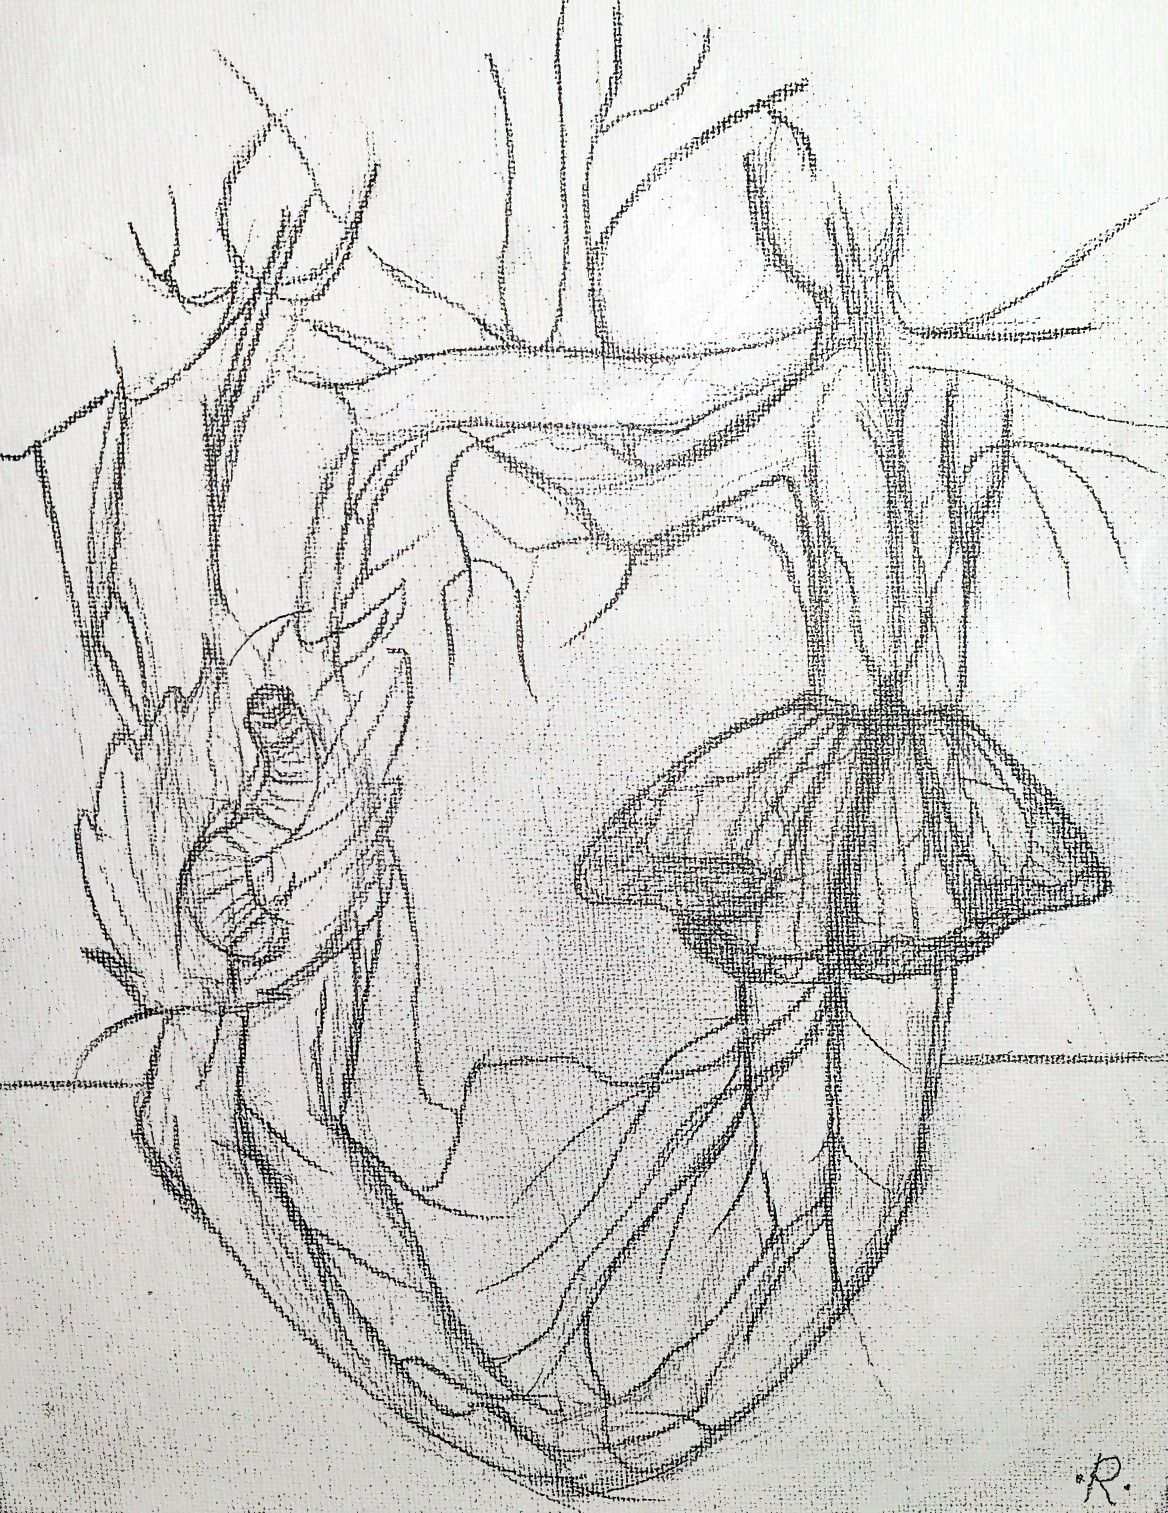 Riendoart losangeles artist arte art hispanicartist hispana sketchartist pencil pemcilart veins woman man zen meditation sketch butterfly